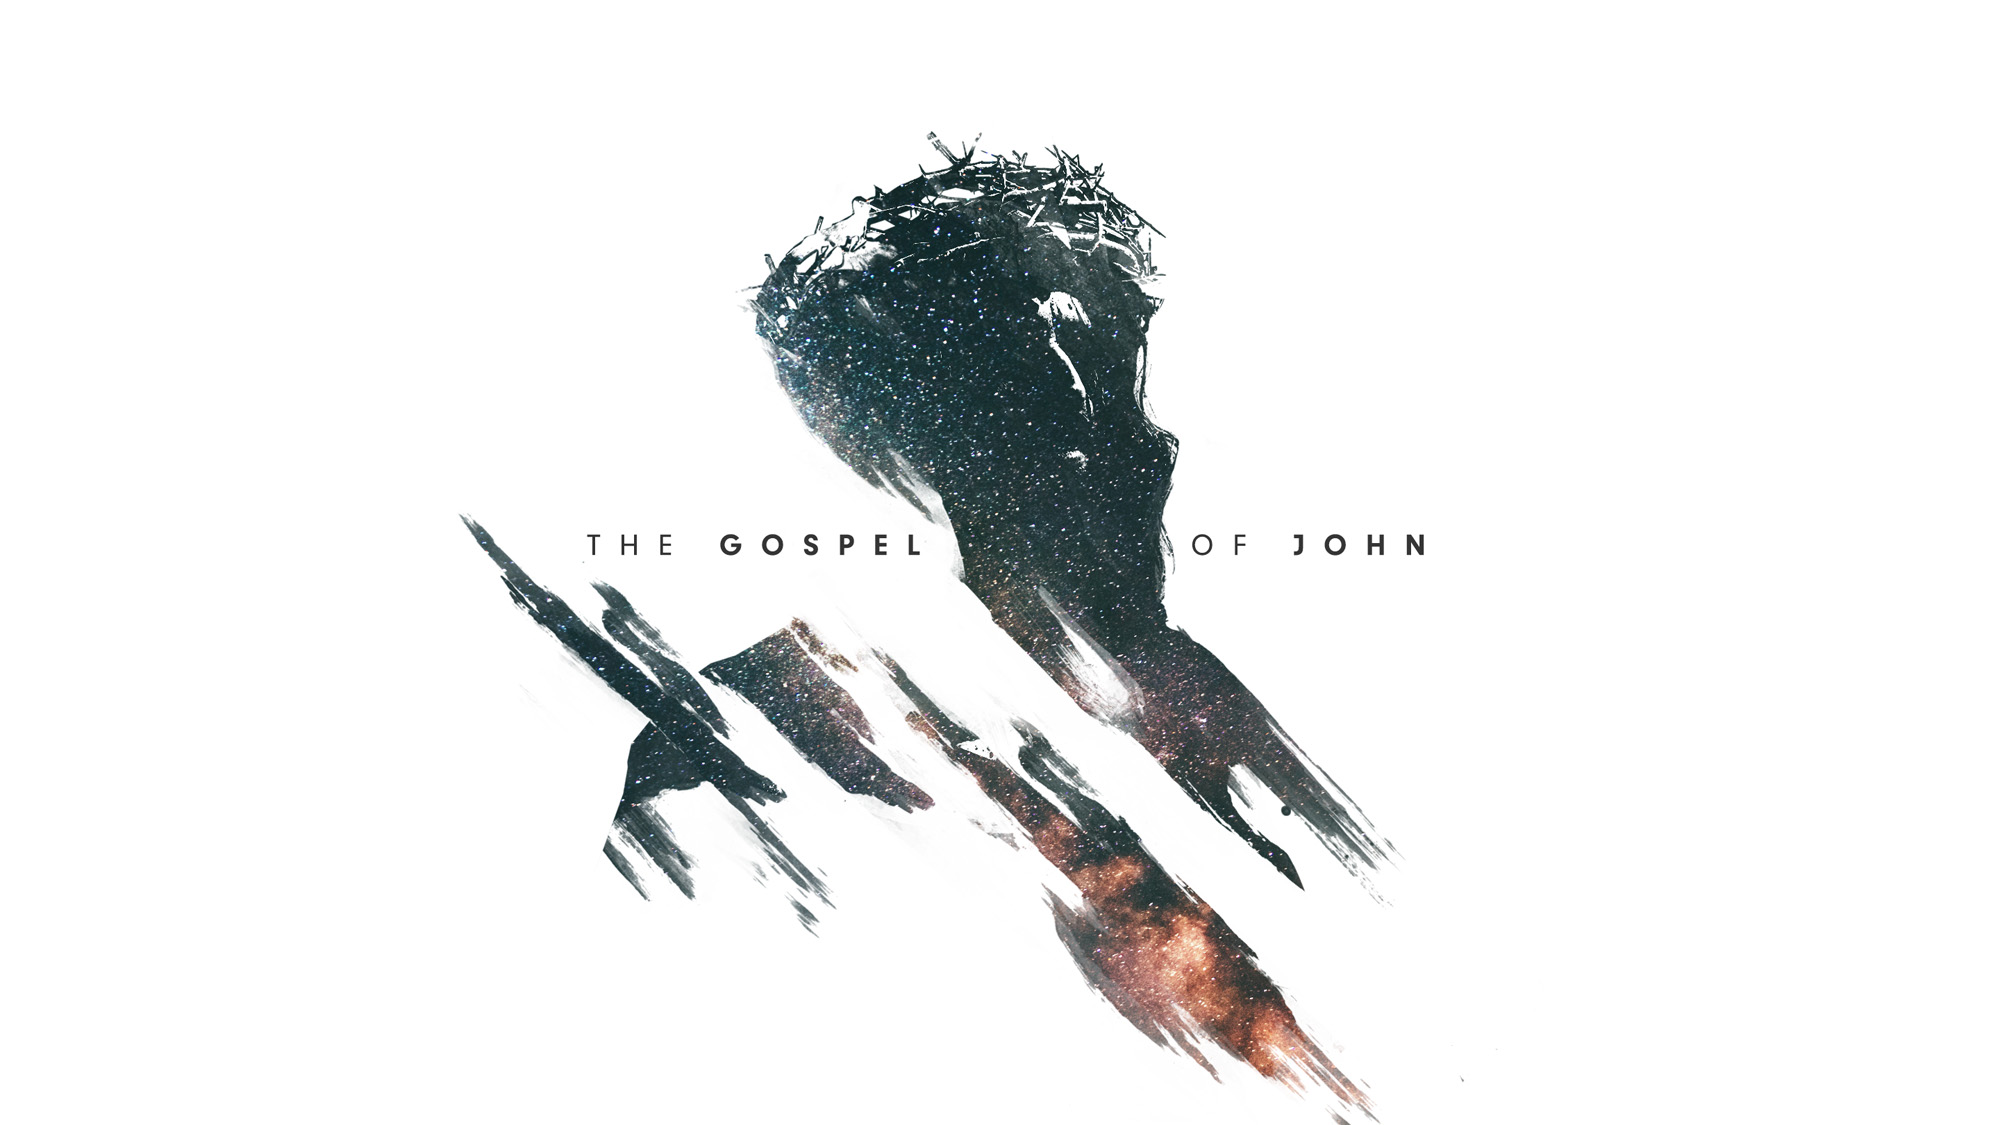 The Gospel Of John Title 1 Wide 16X9